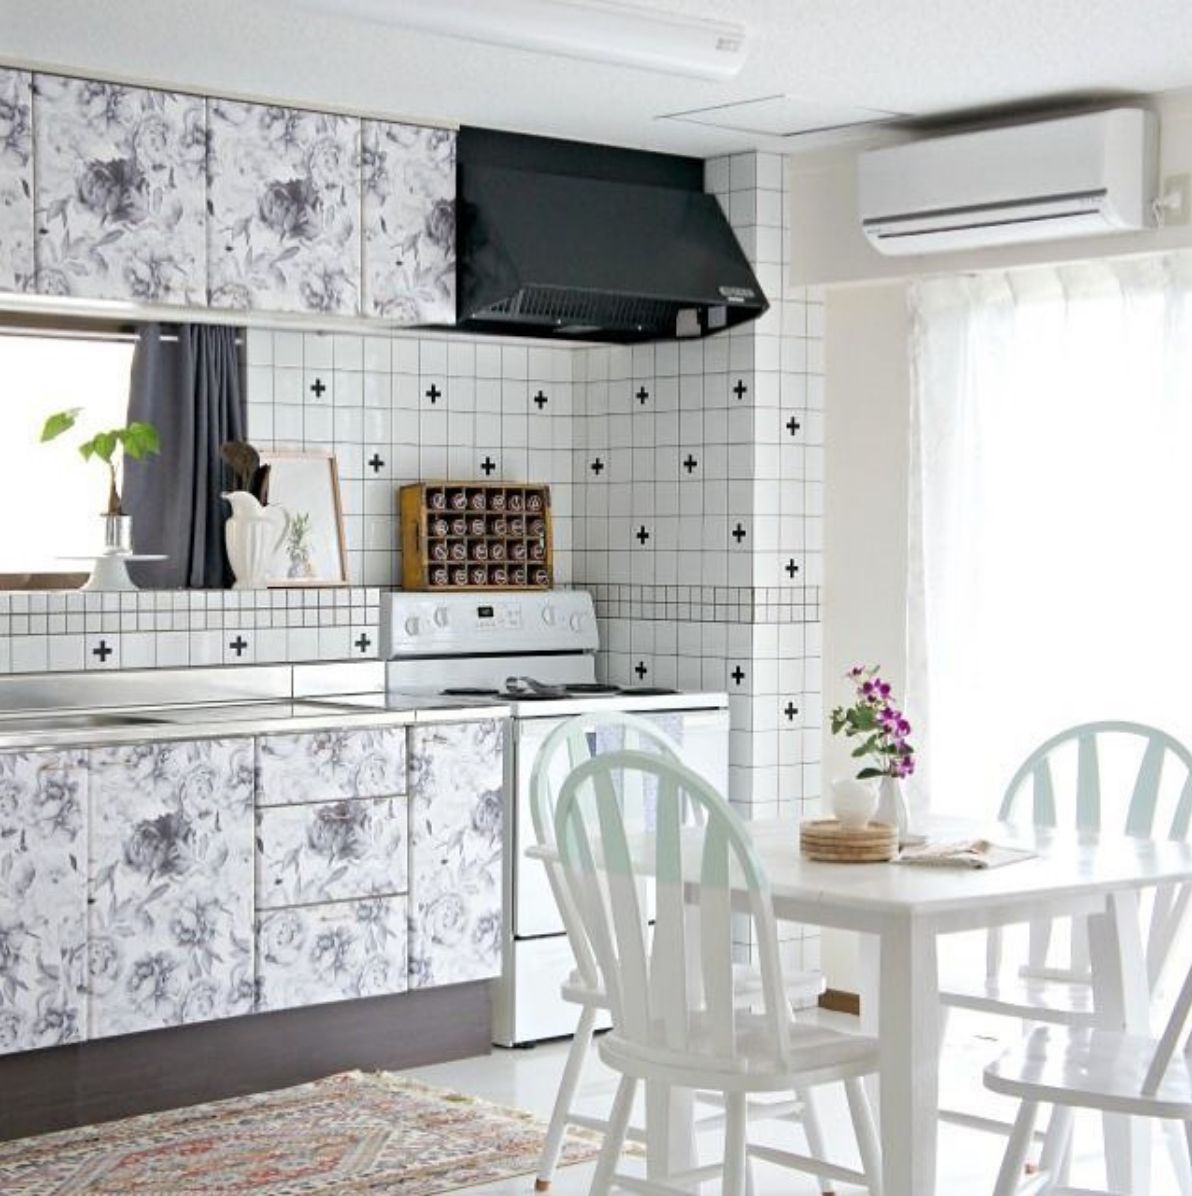 9 ways to makeover dated kitchen cabinets without replacing them